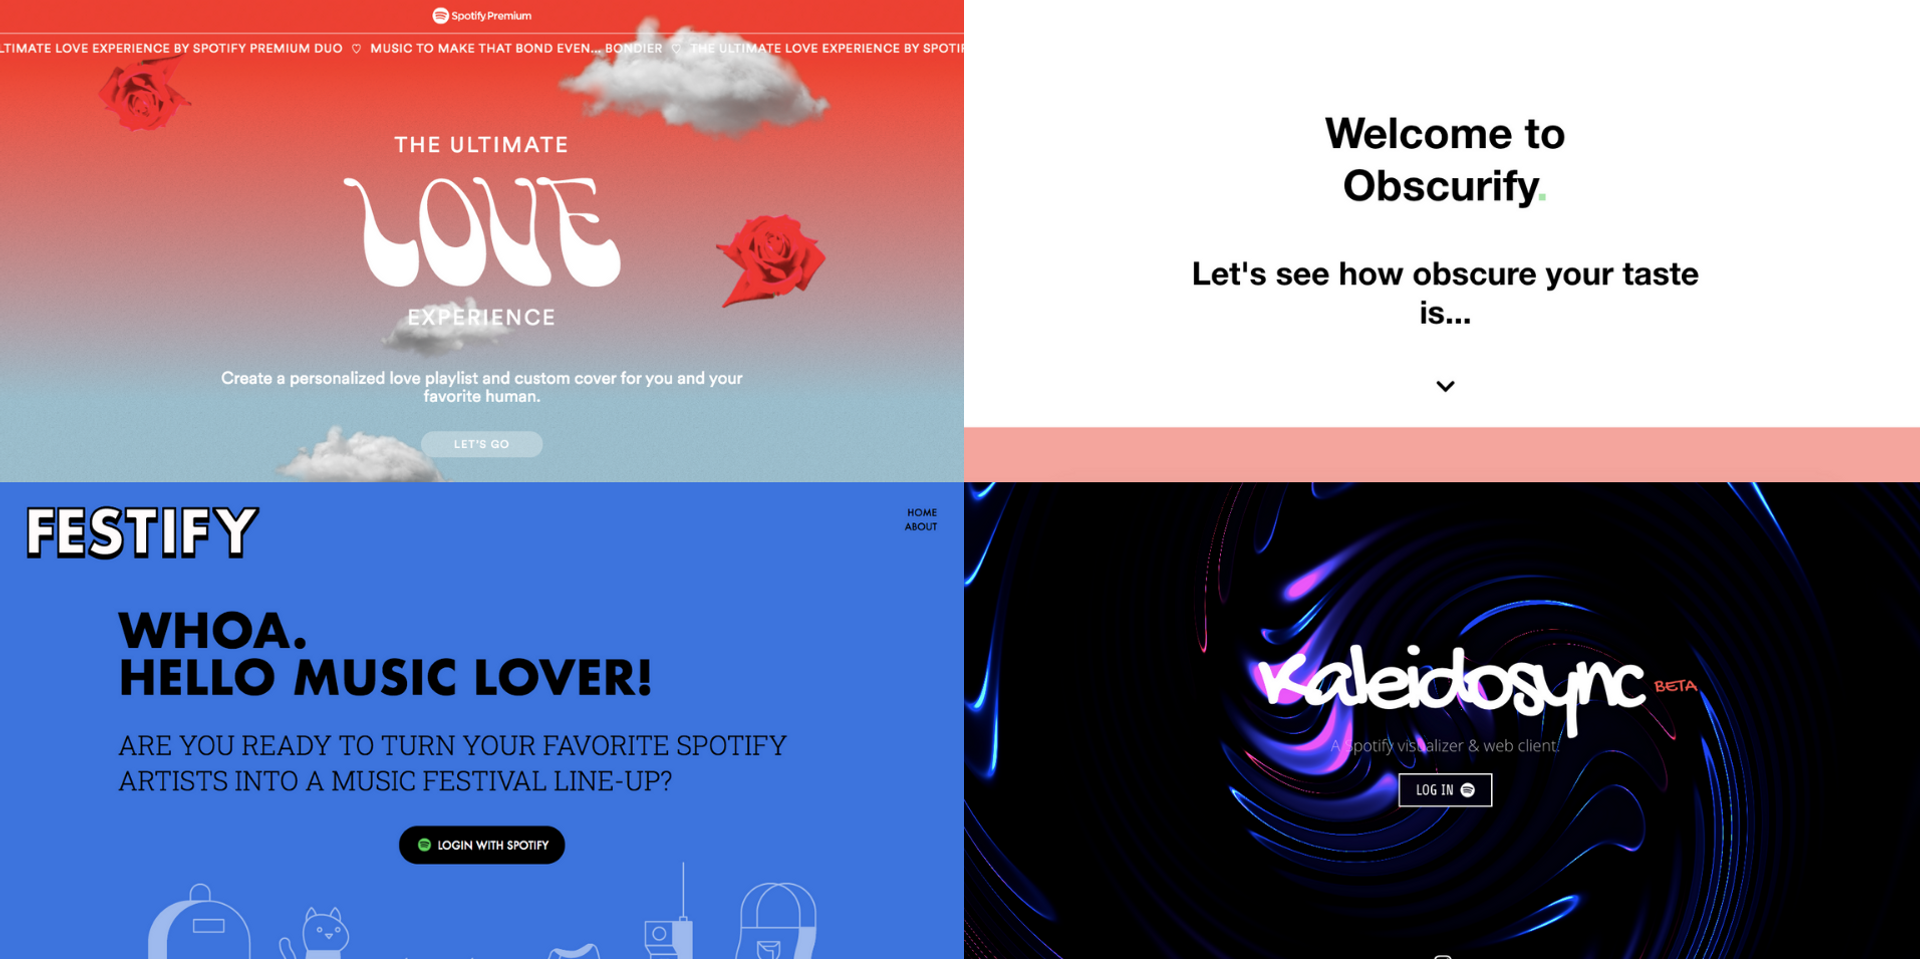 11 apps you can use with your Spotify account: Receiptify, Obscurify, Kaleidosync, and more